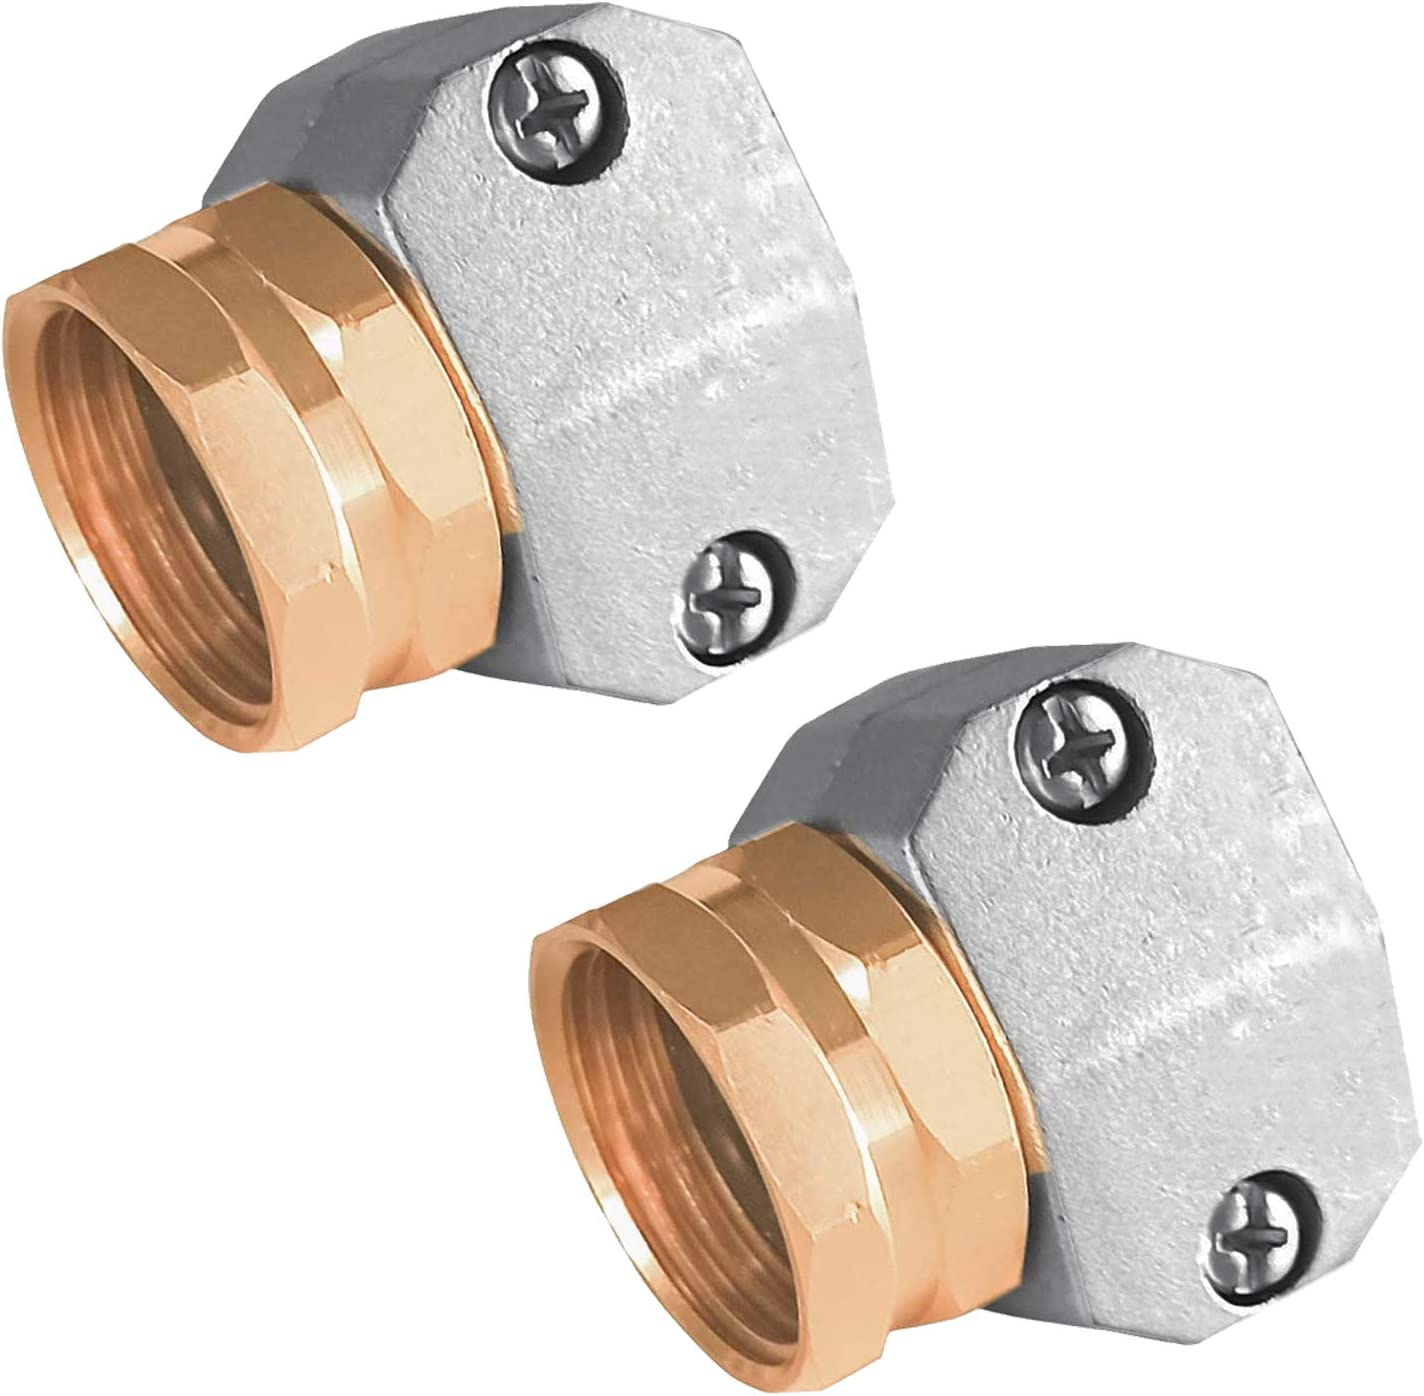 Hourleey Garden Hose Repair Fittings, Zinc and Aluminum Male and Female Hose End Water Hose Repair Connector (2 Female)